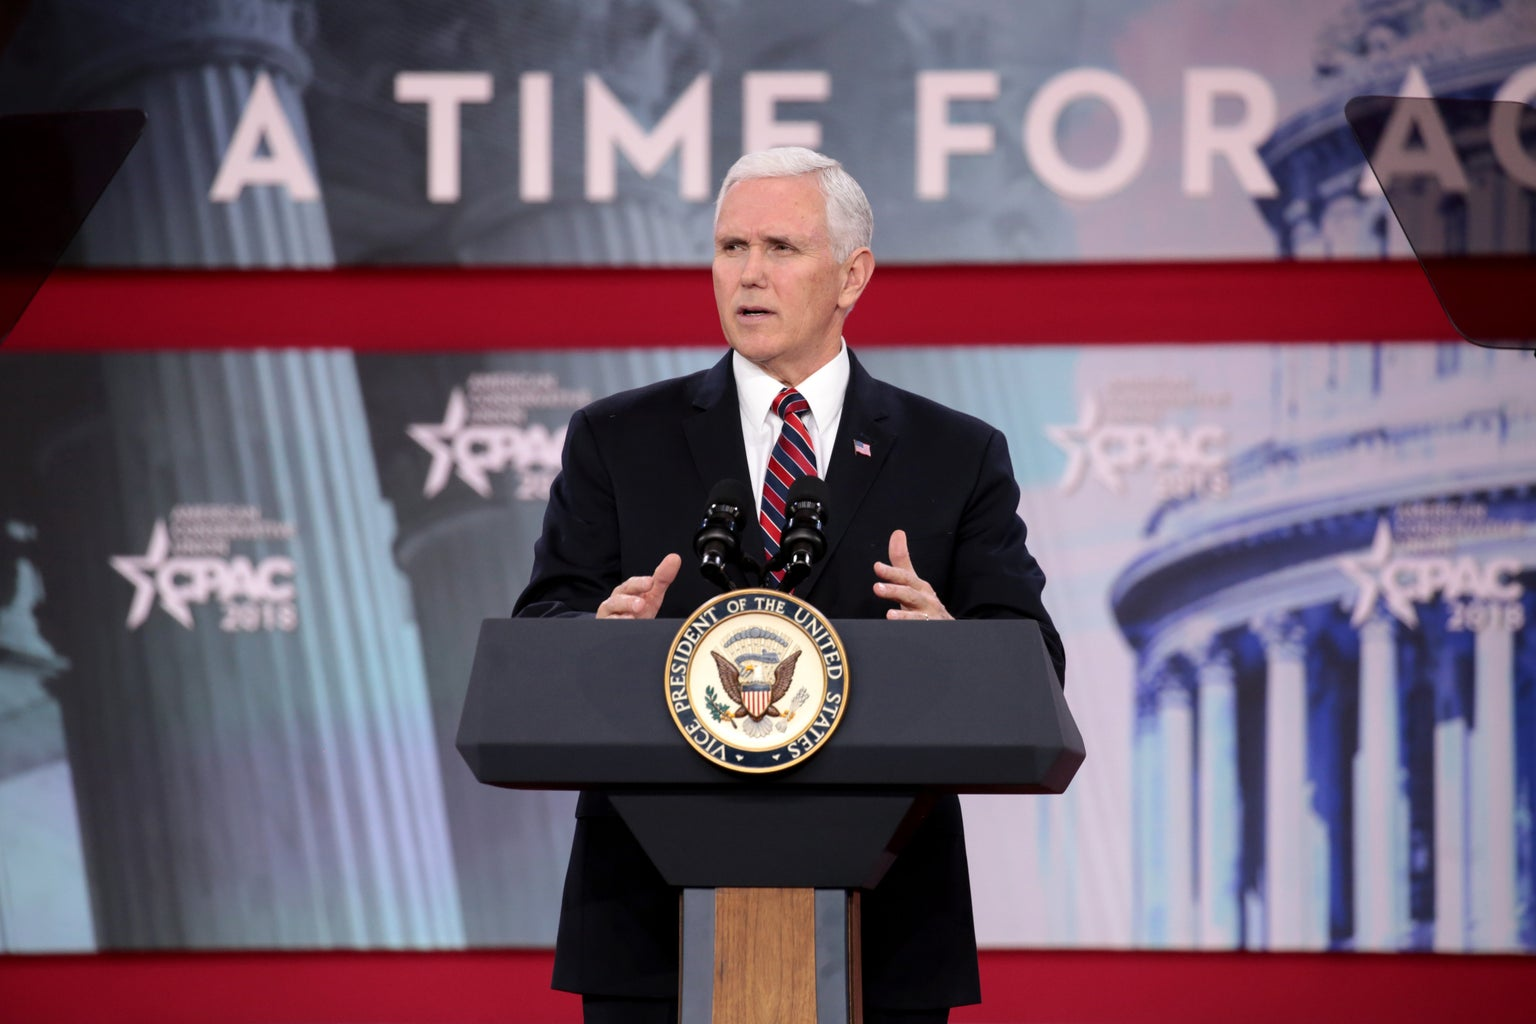 Vice President Mike Pence talking on stage